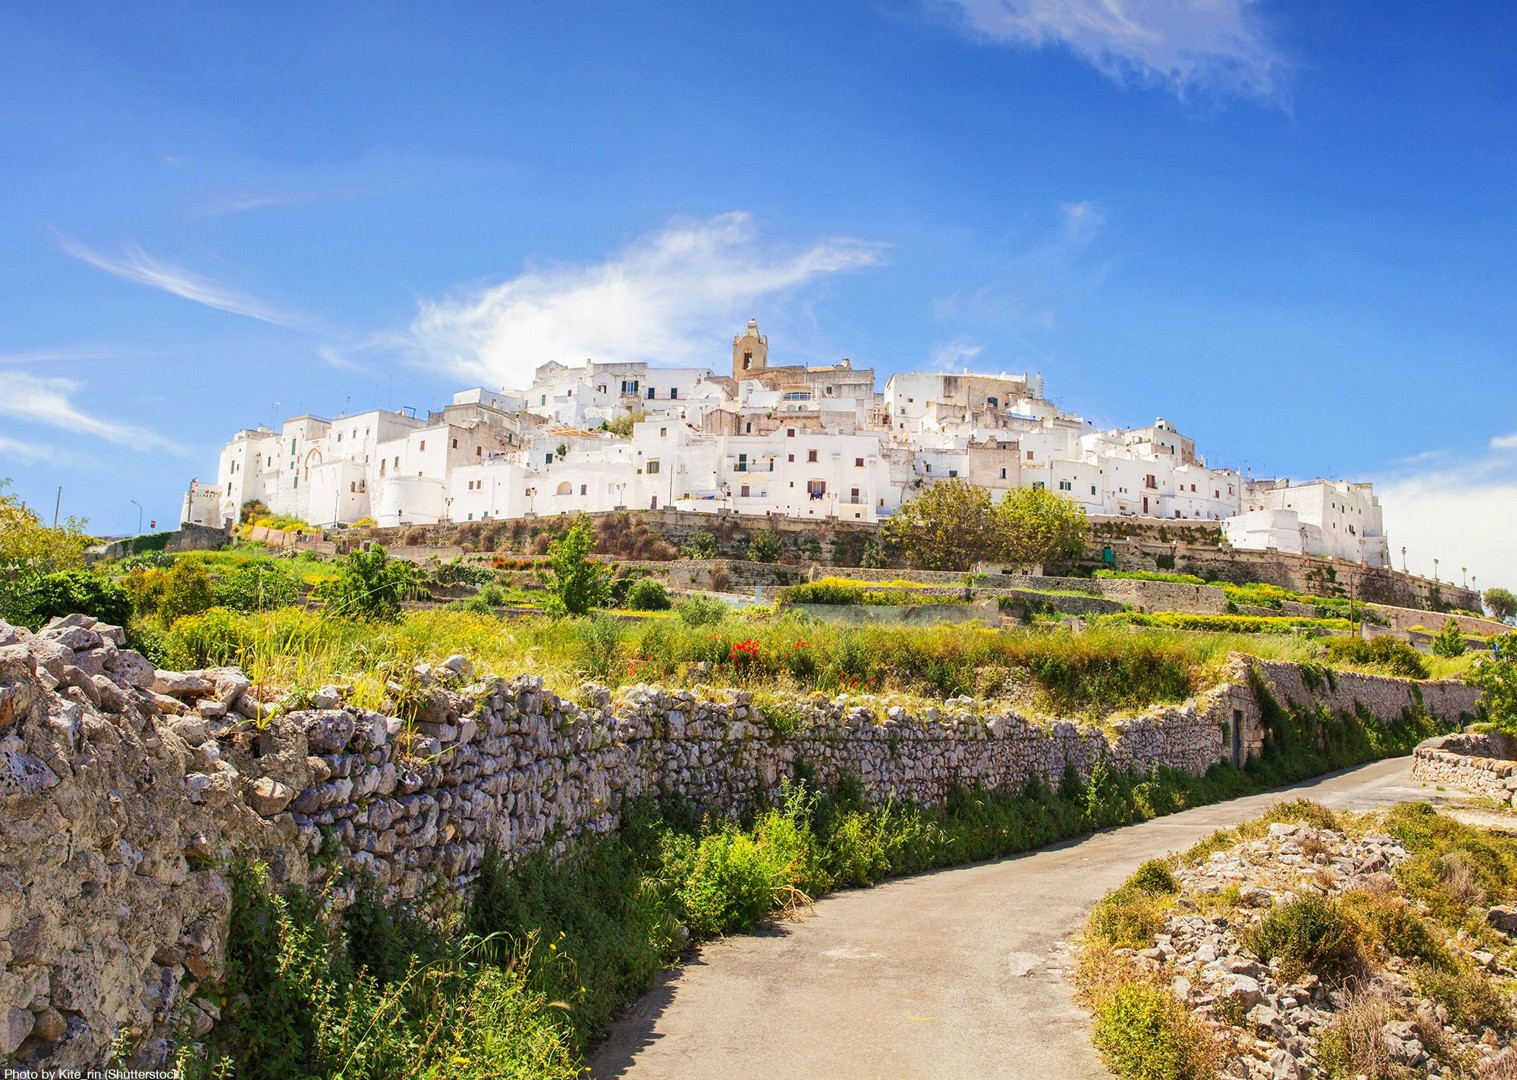 shutterstock_204778273  By Kite_rin.jpg - Italy - Puglia - Self-Guided Leisure Cycling Holiday - Leisure Cycling